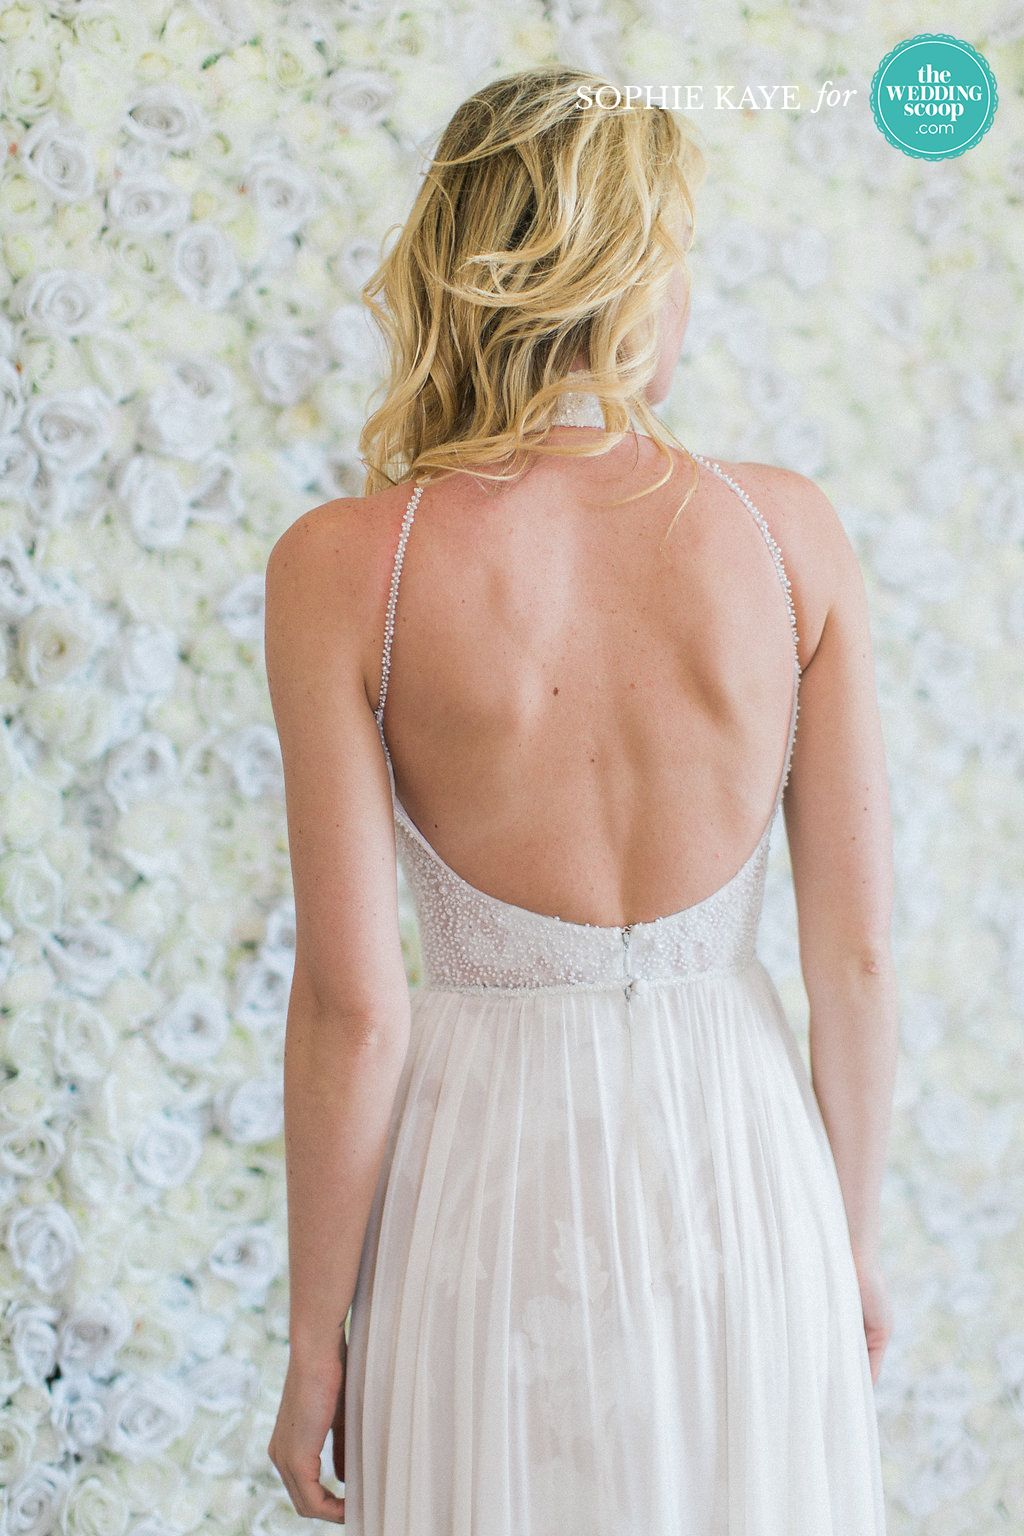 Limor Rosen beautiful backless detail with flowy skirt // We're still dreaming of these refreshing New York Bridal Fashion Week finds from Alexandra Grecco, CHRISTOS BRIDAL, Leanne Marshall and Limor Rosen Bridal Couture! Like your favs, Wedding Scoopers! // 📷: Sophie Kaye Photography for The Wedding Scoop